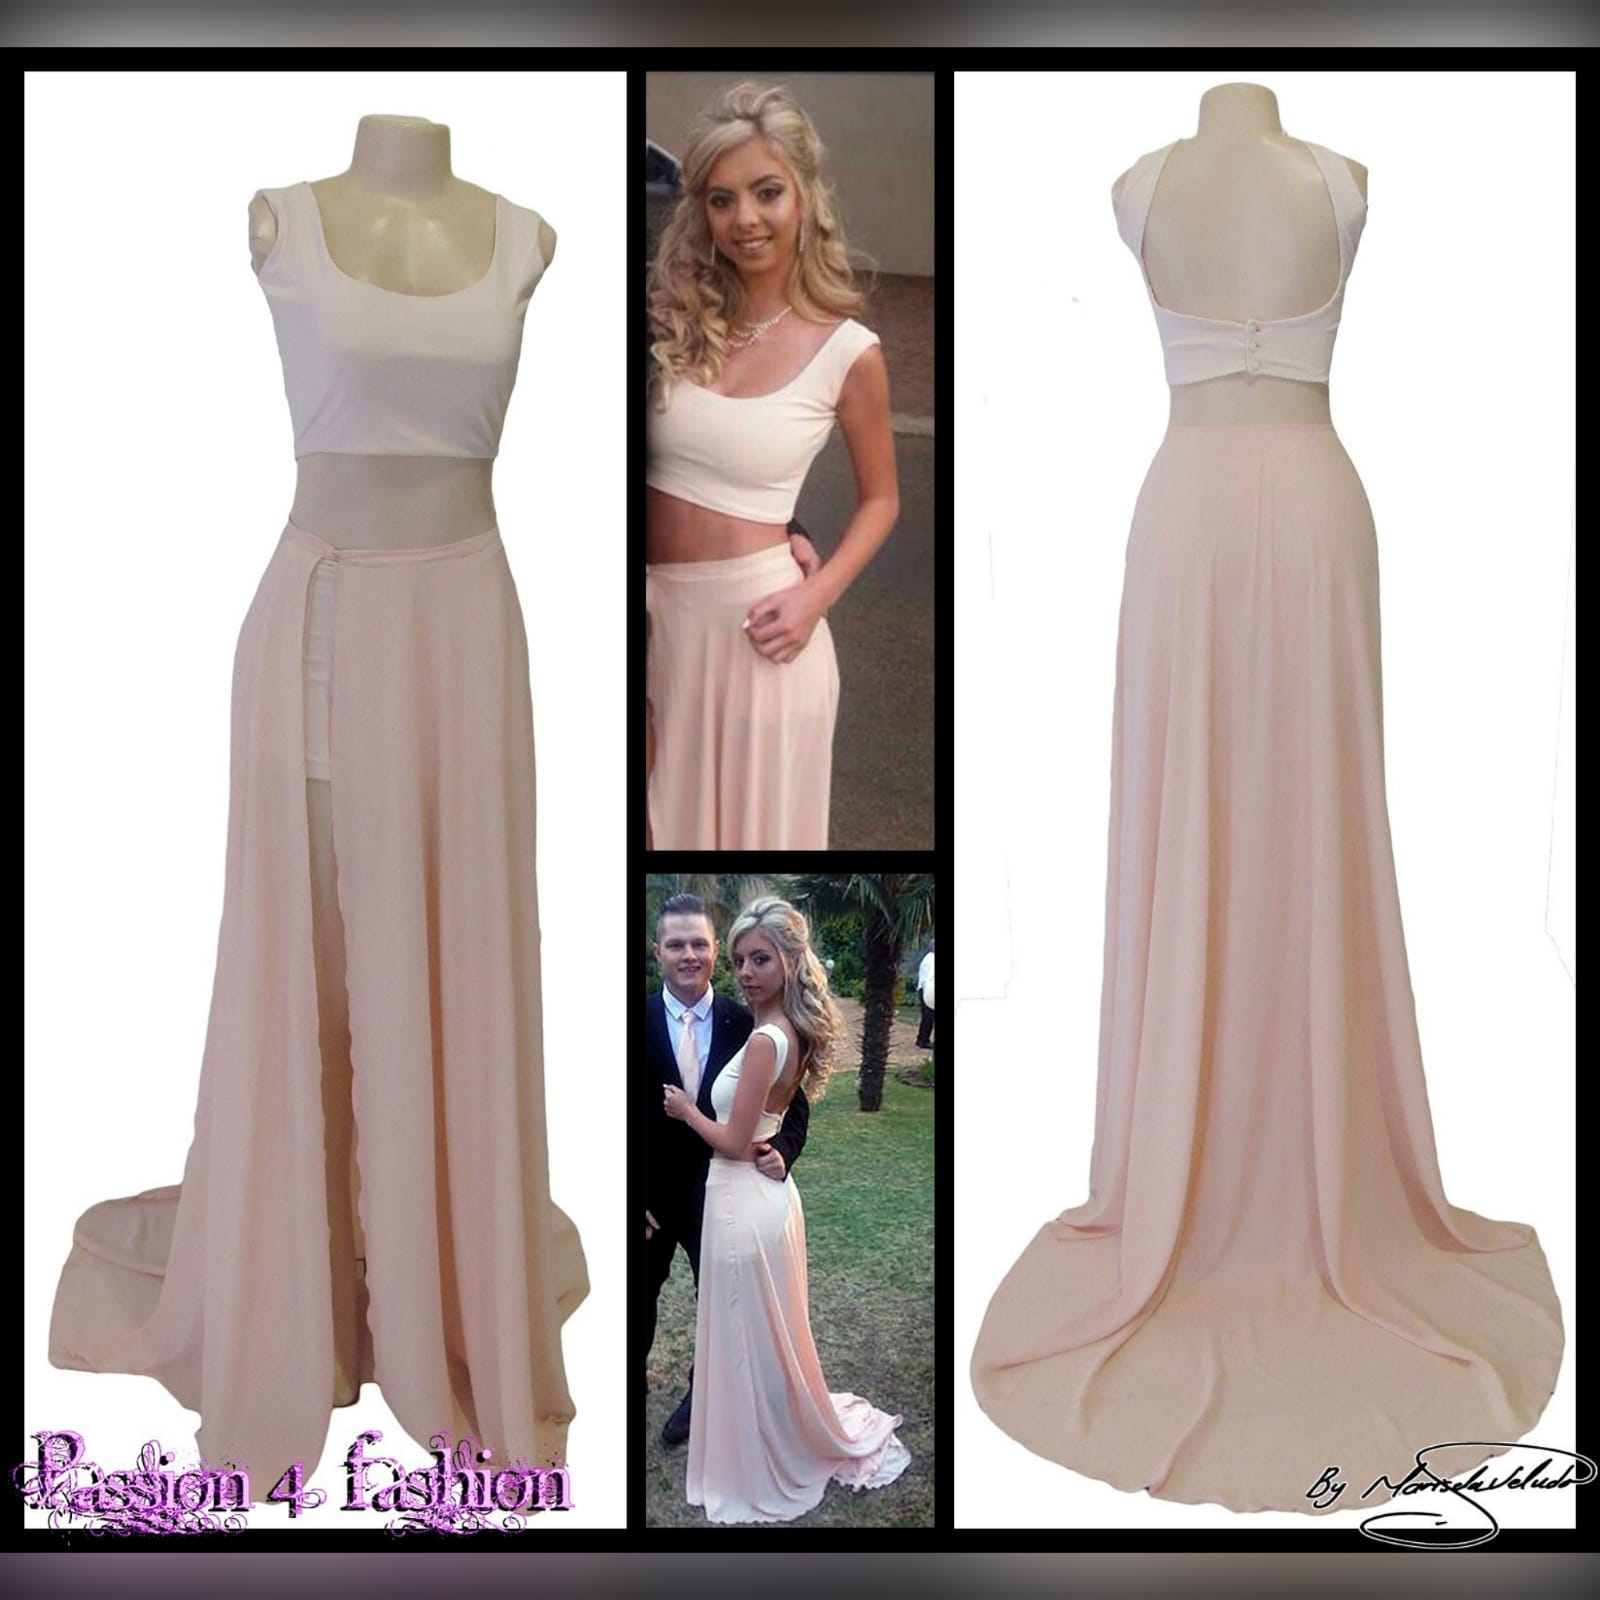 2 piece nude and white smart casual prom dress 4 2 piece nude and white smart casual prom dress. White crop top with a rounded neckline, low open back closed with buttons. Long chiffon skirt with a slit and a train.